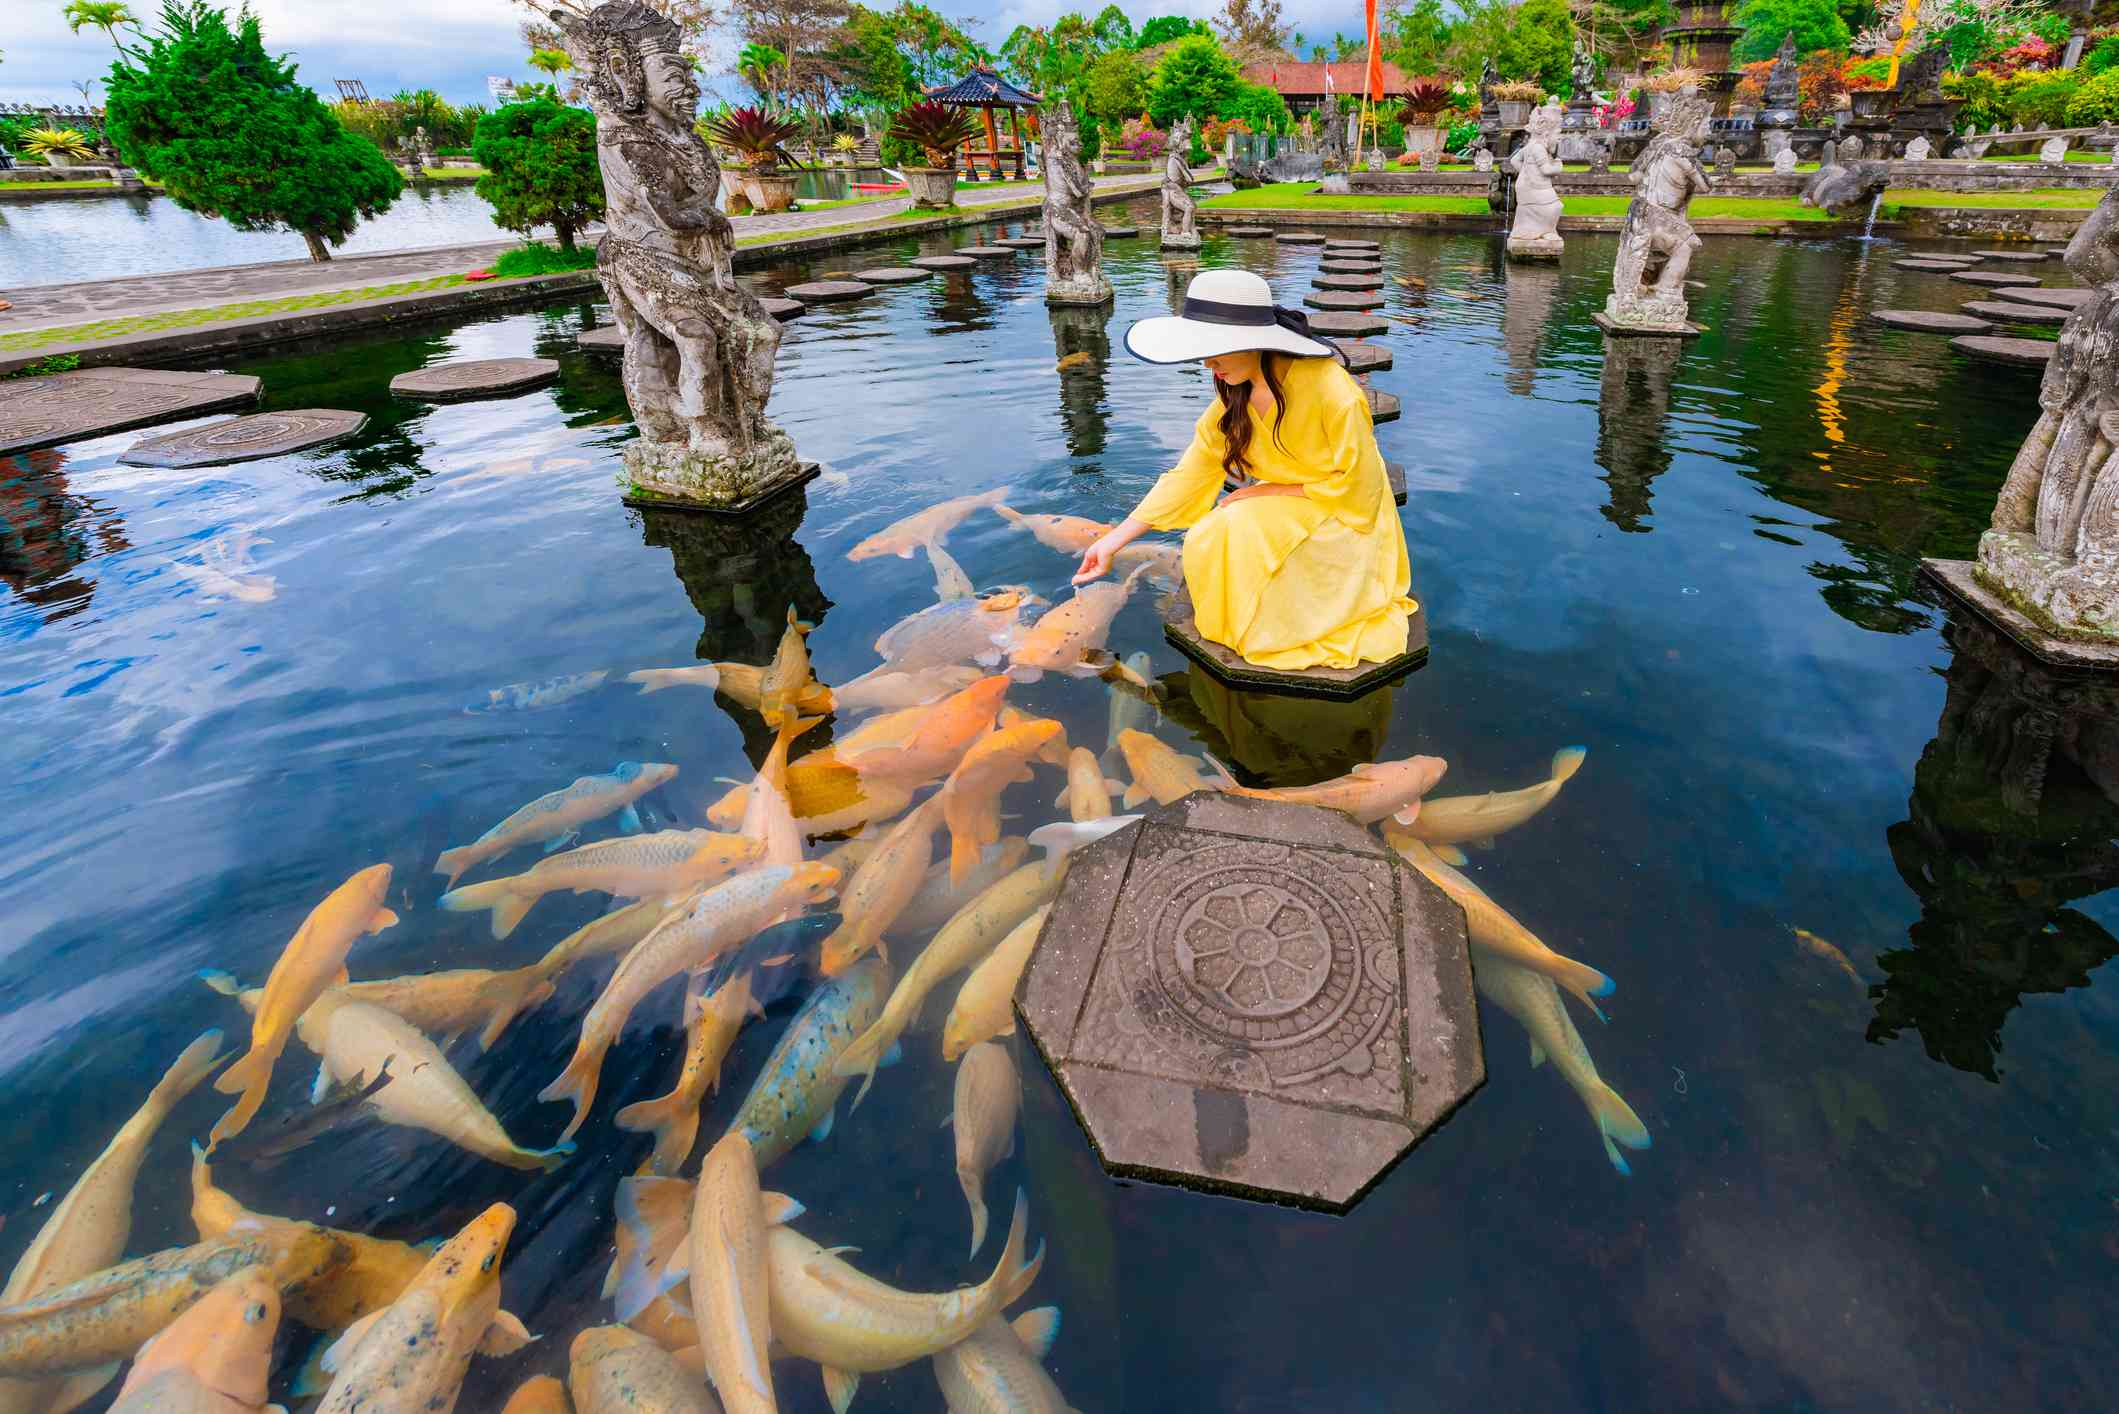 A woman feeding koi fish in a pond full of sculptures.